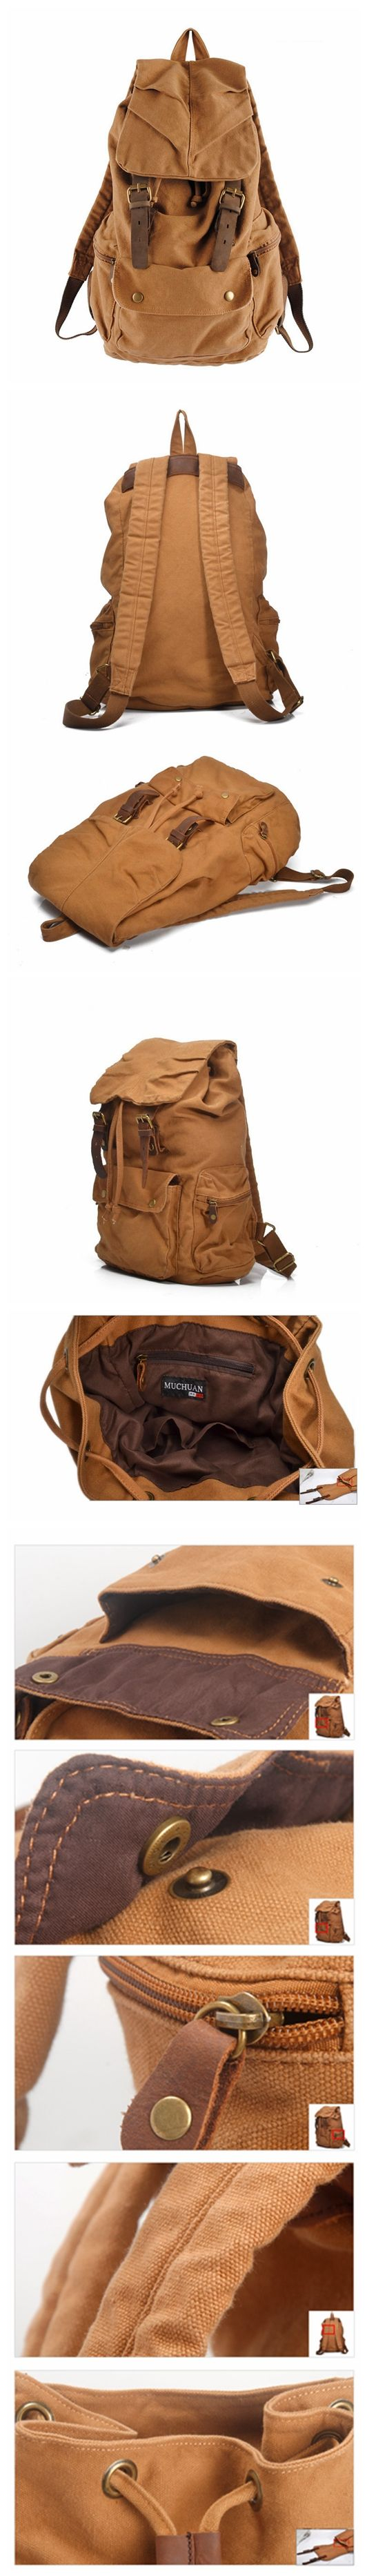 Leather Trimmed Waxed Canvas Backpack, School Backpack, Travel Backpack